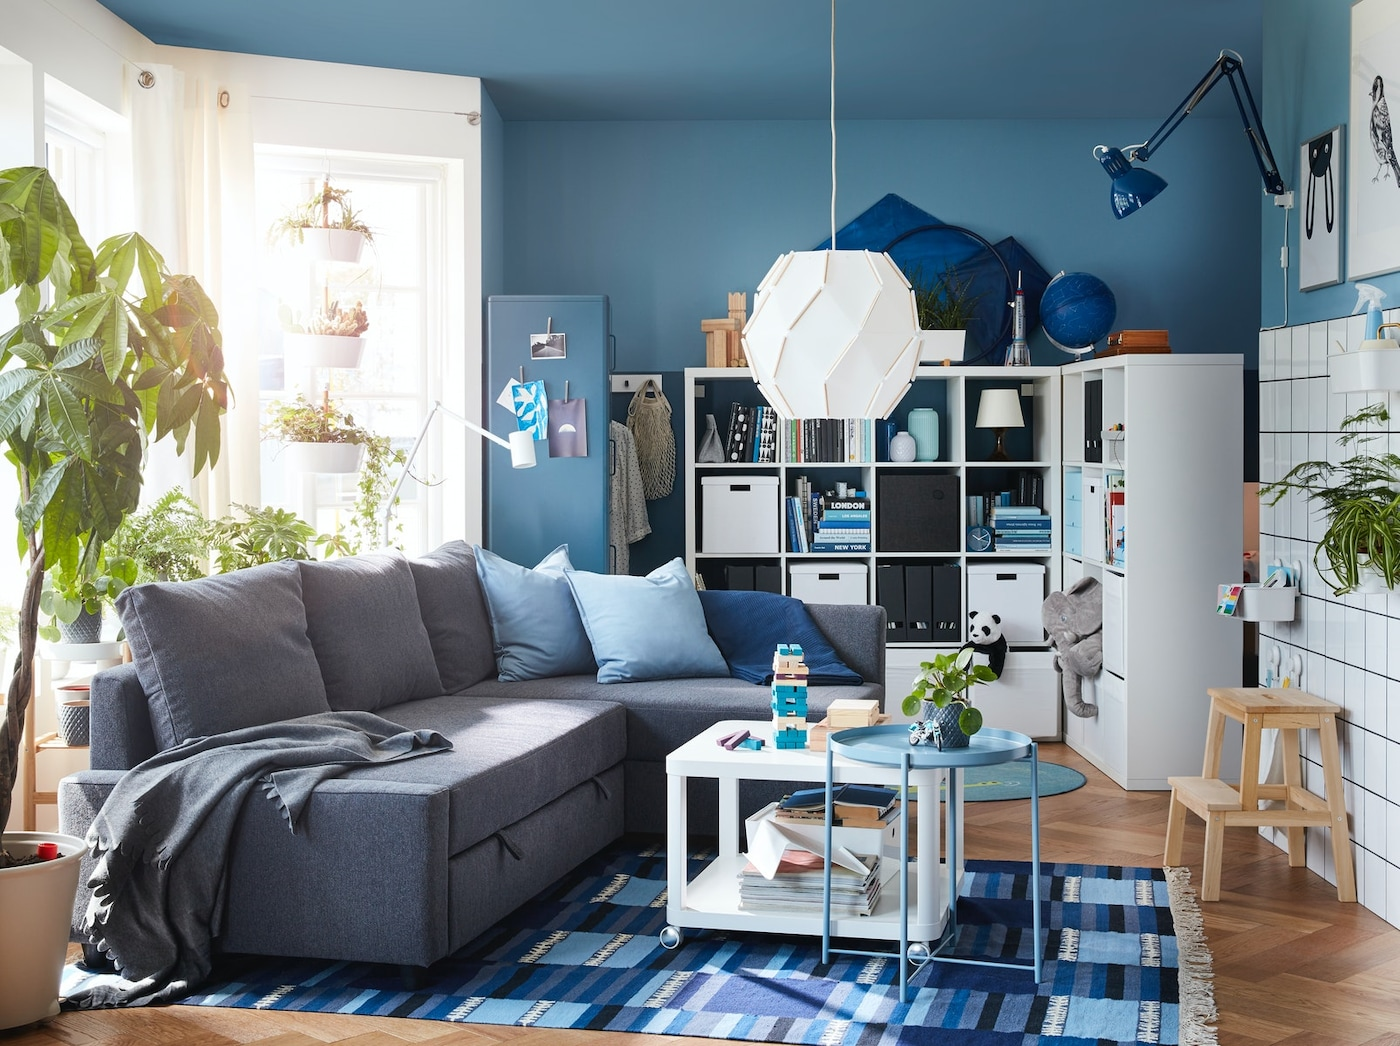 Bright blue living room with a grey sofa backing onto a window with plants